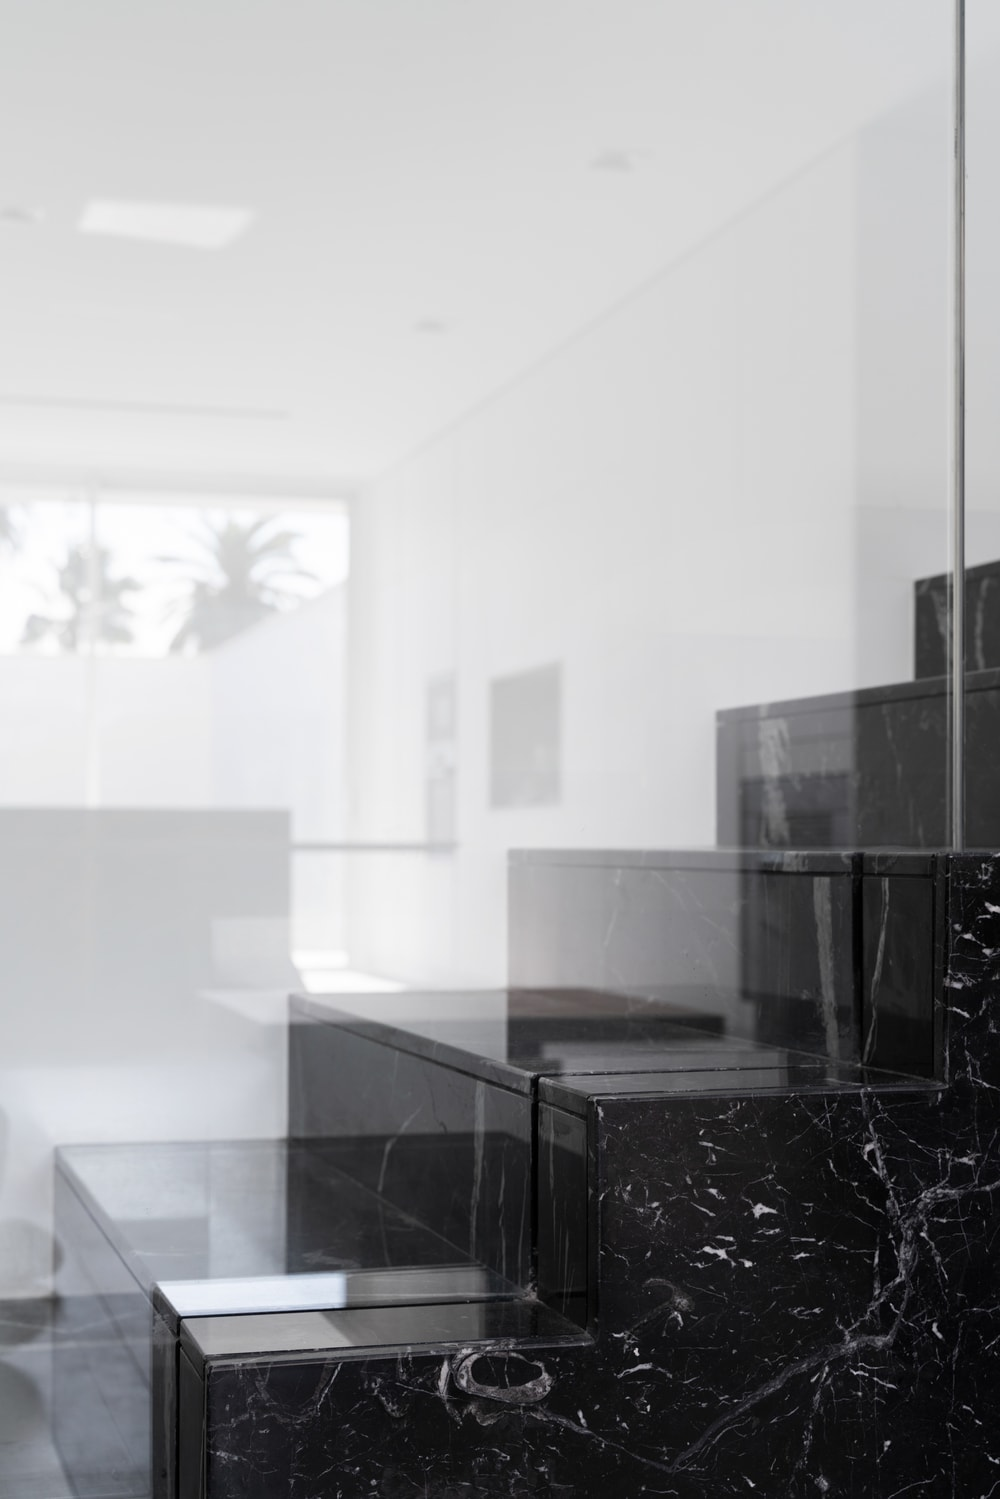 The side of the staircase is also made of black marble giving it a solid single structure look.